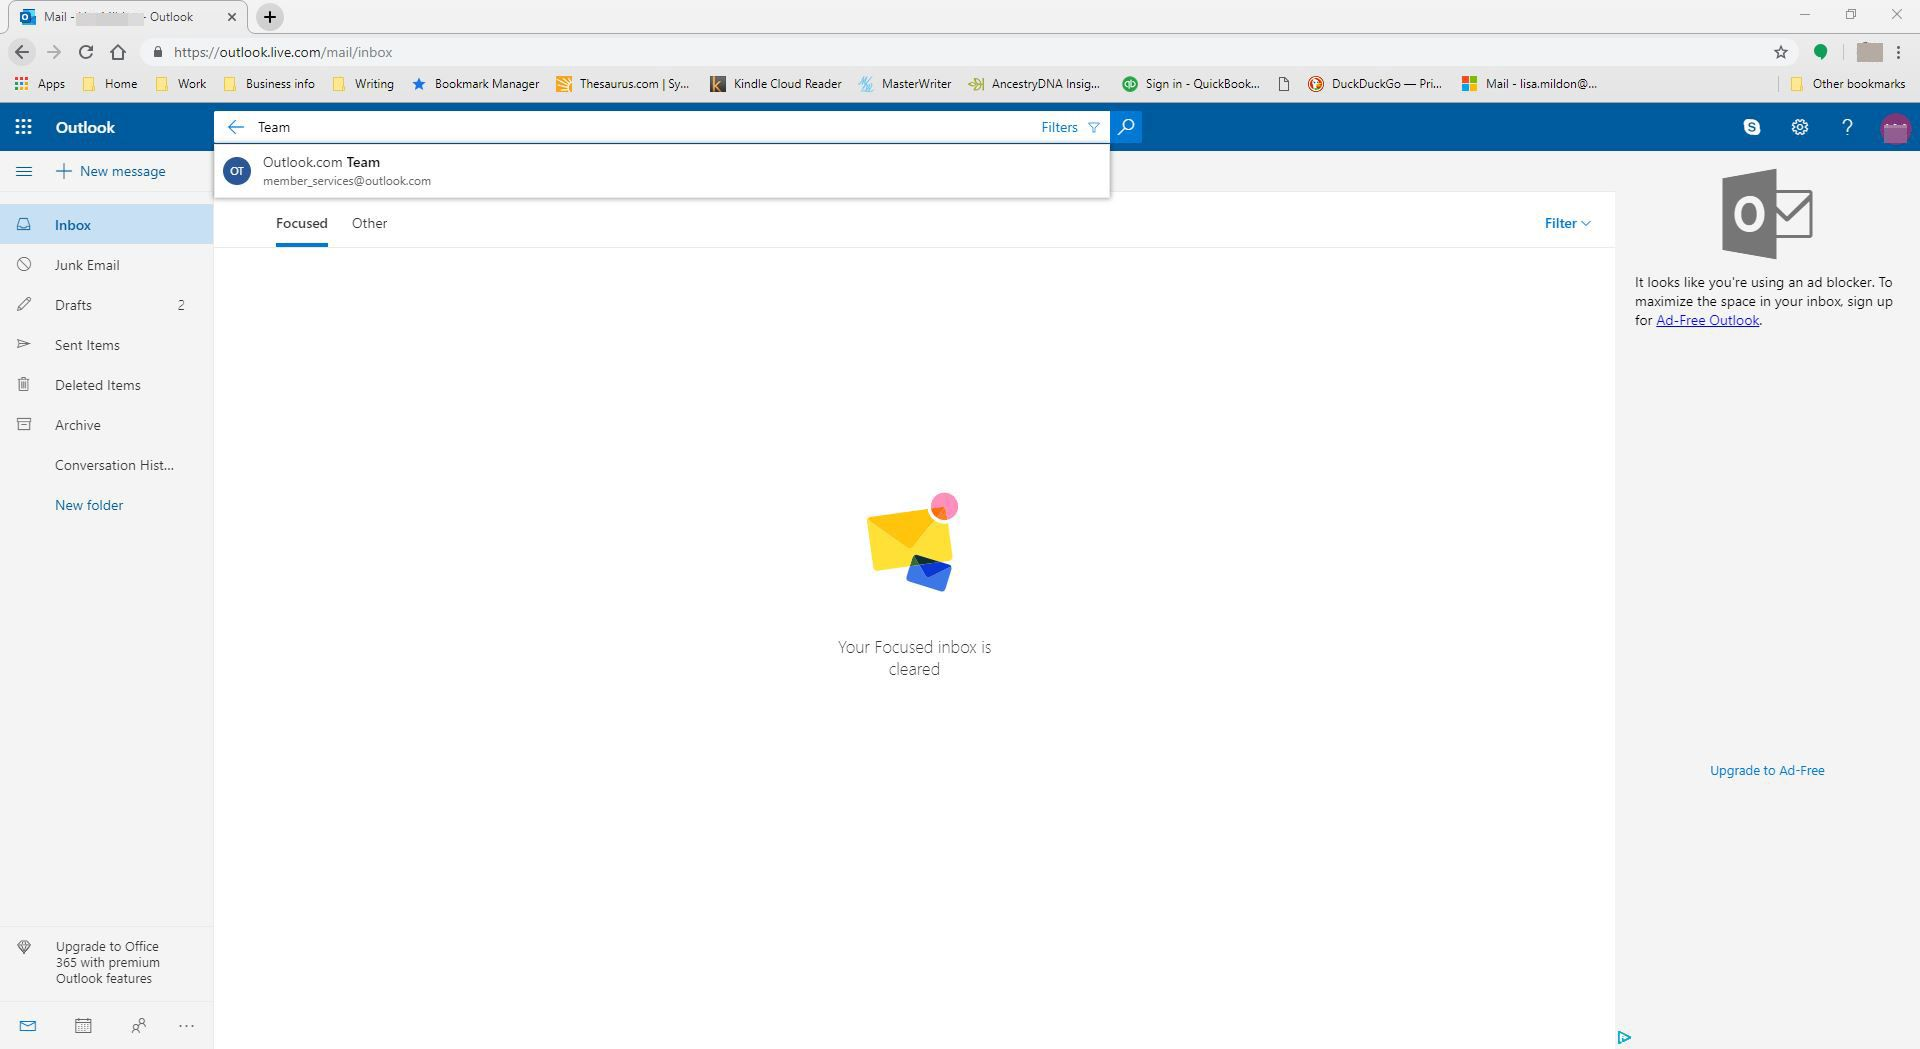 Searching for an email using a keyword in Outlook.com